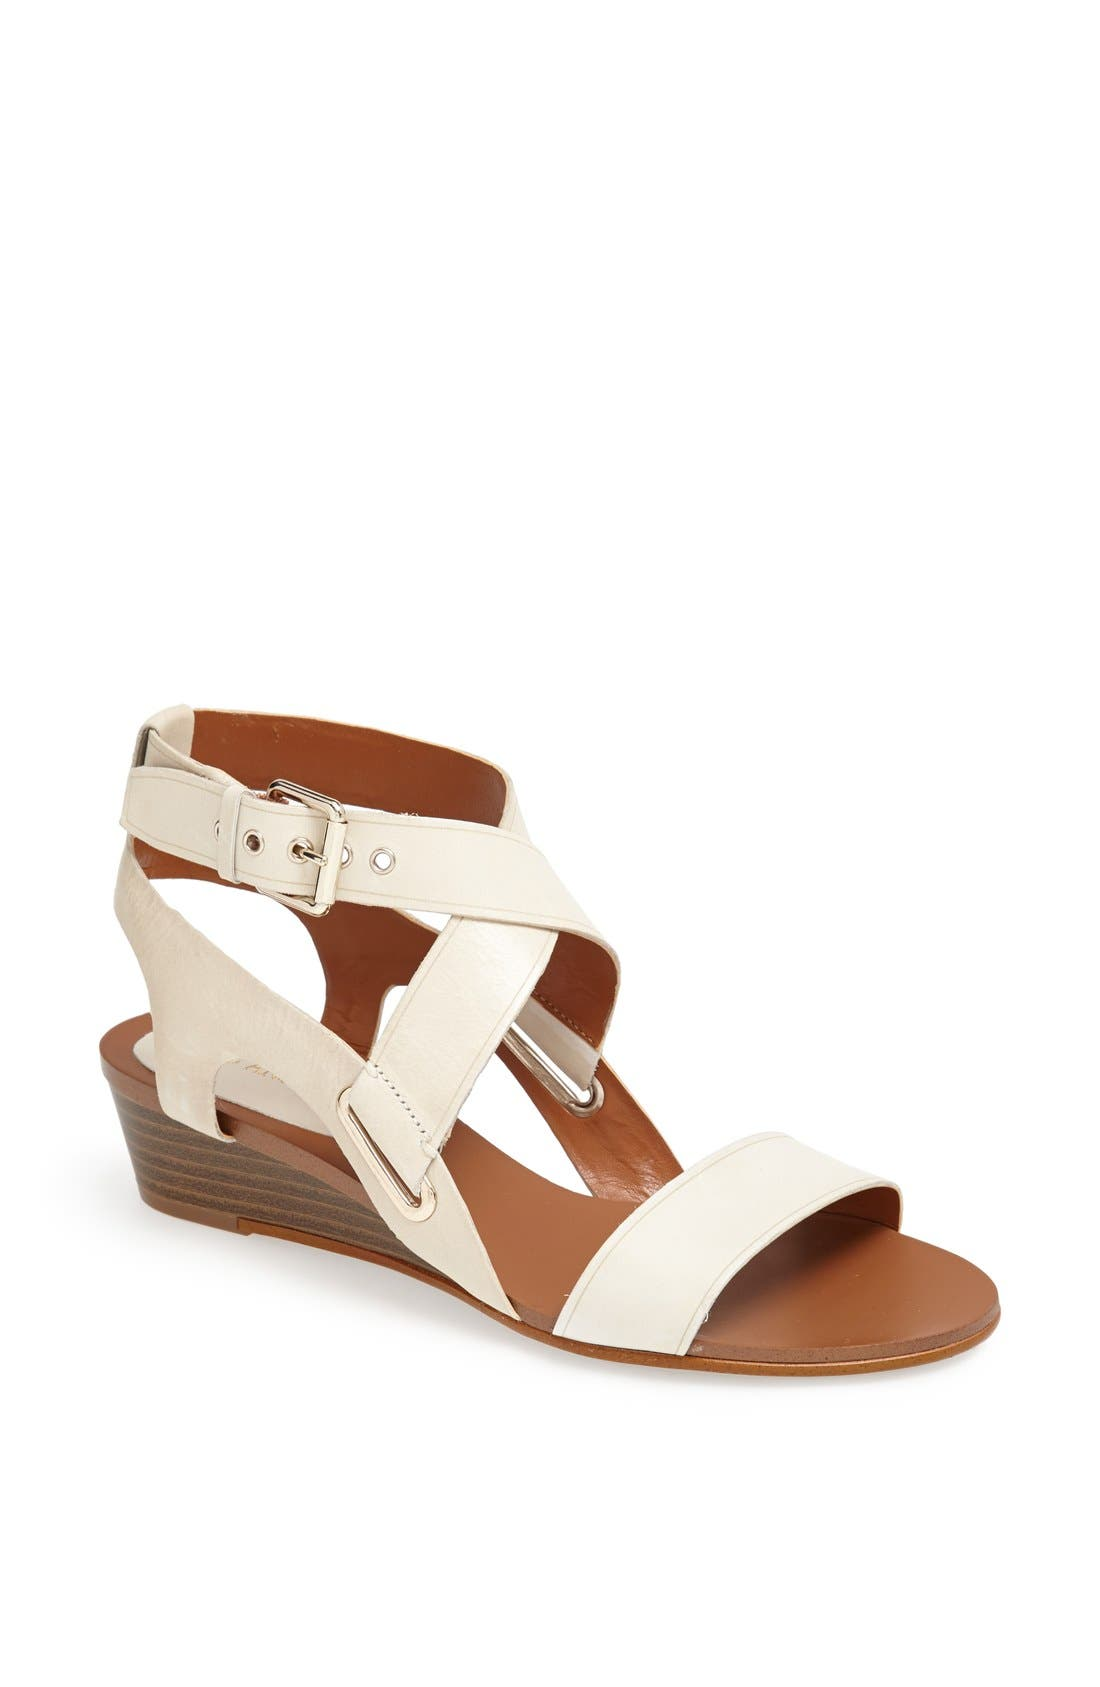 Alternate Image 1 Selected - Enzo Angiolini 'Zabariz' Sandal